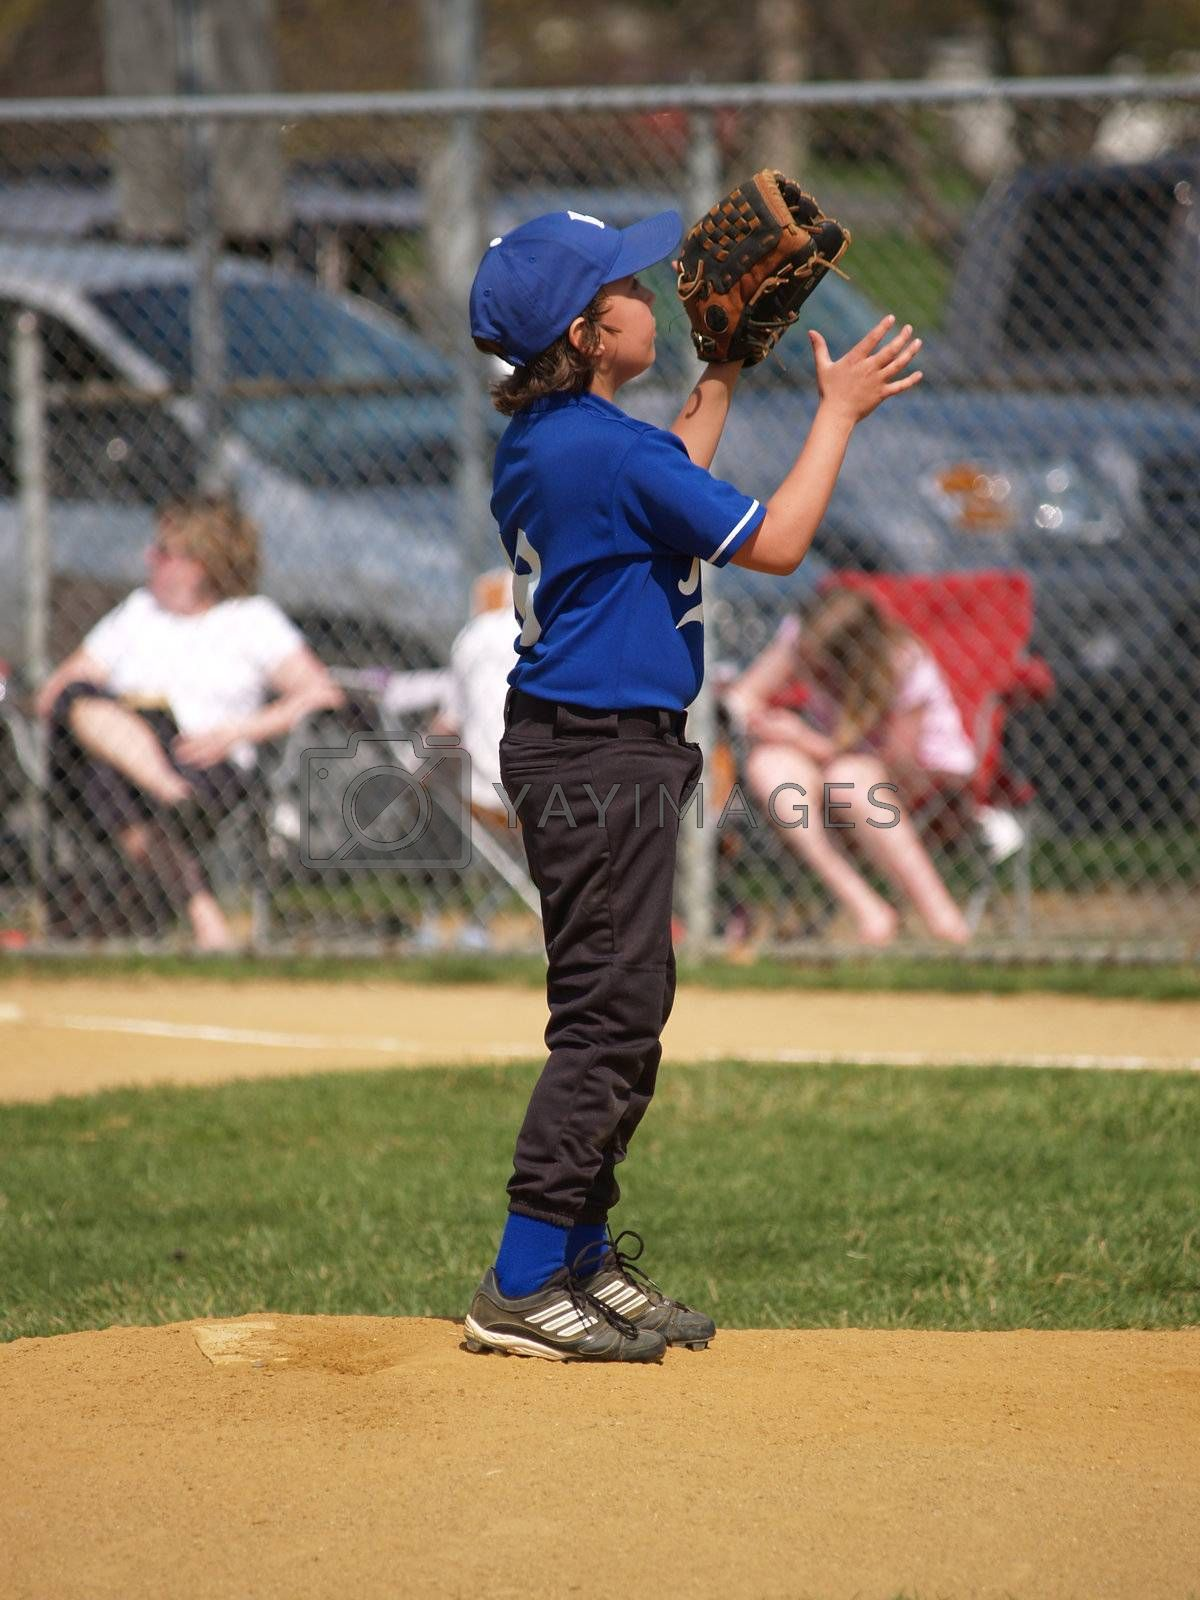 a little league baseball player waiting for the throw